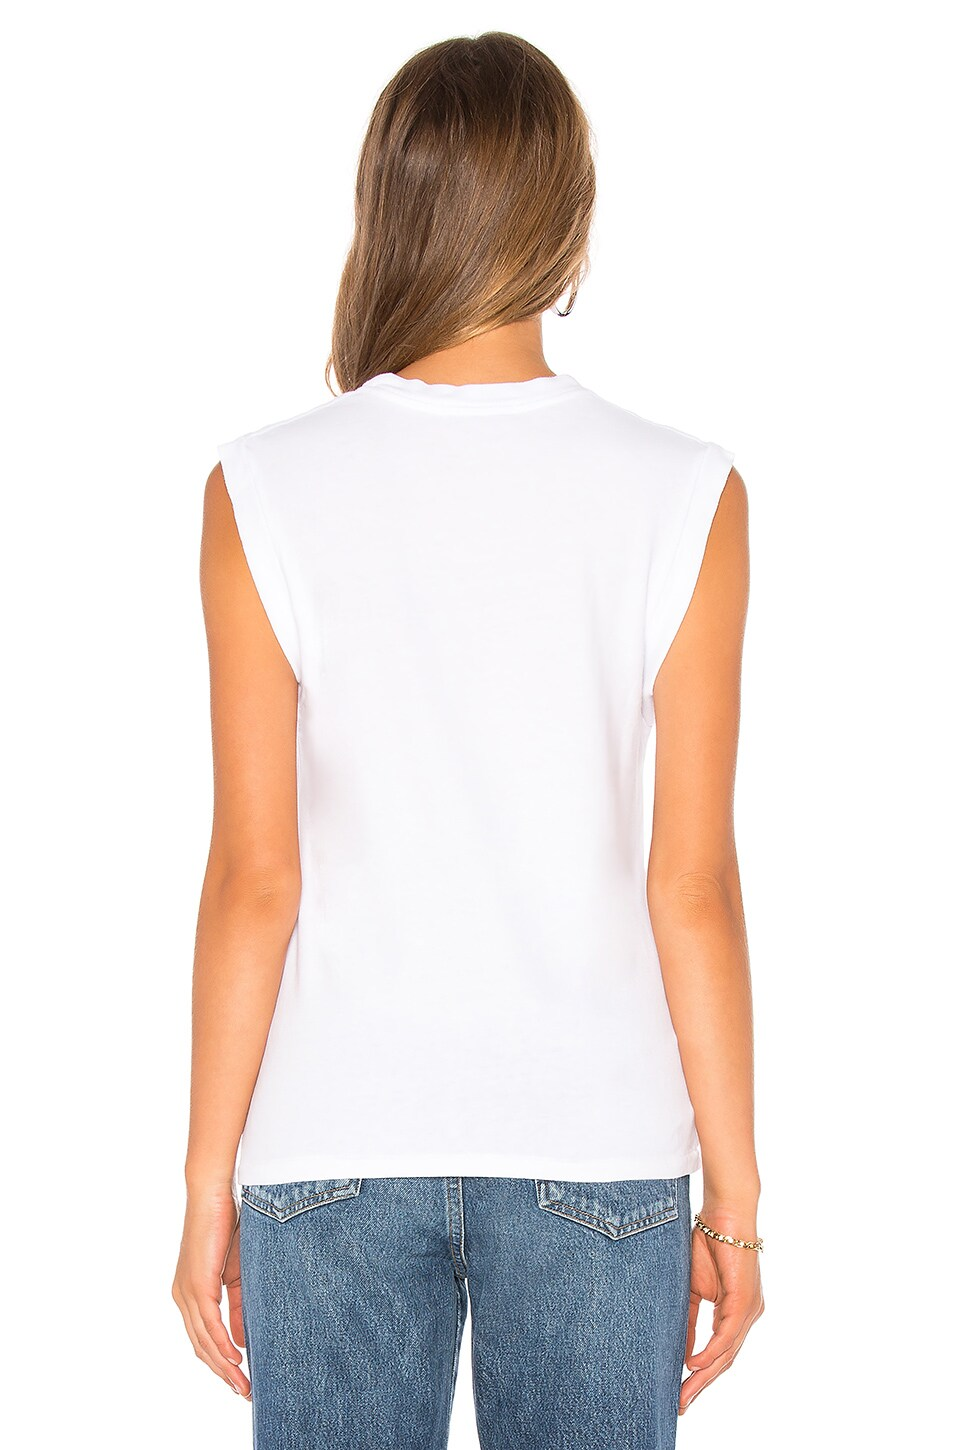 Muscle Tee, view 3, click to view large image.